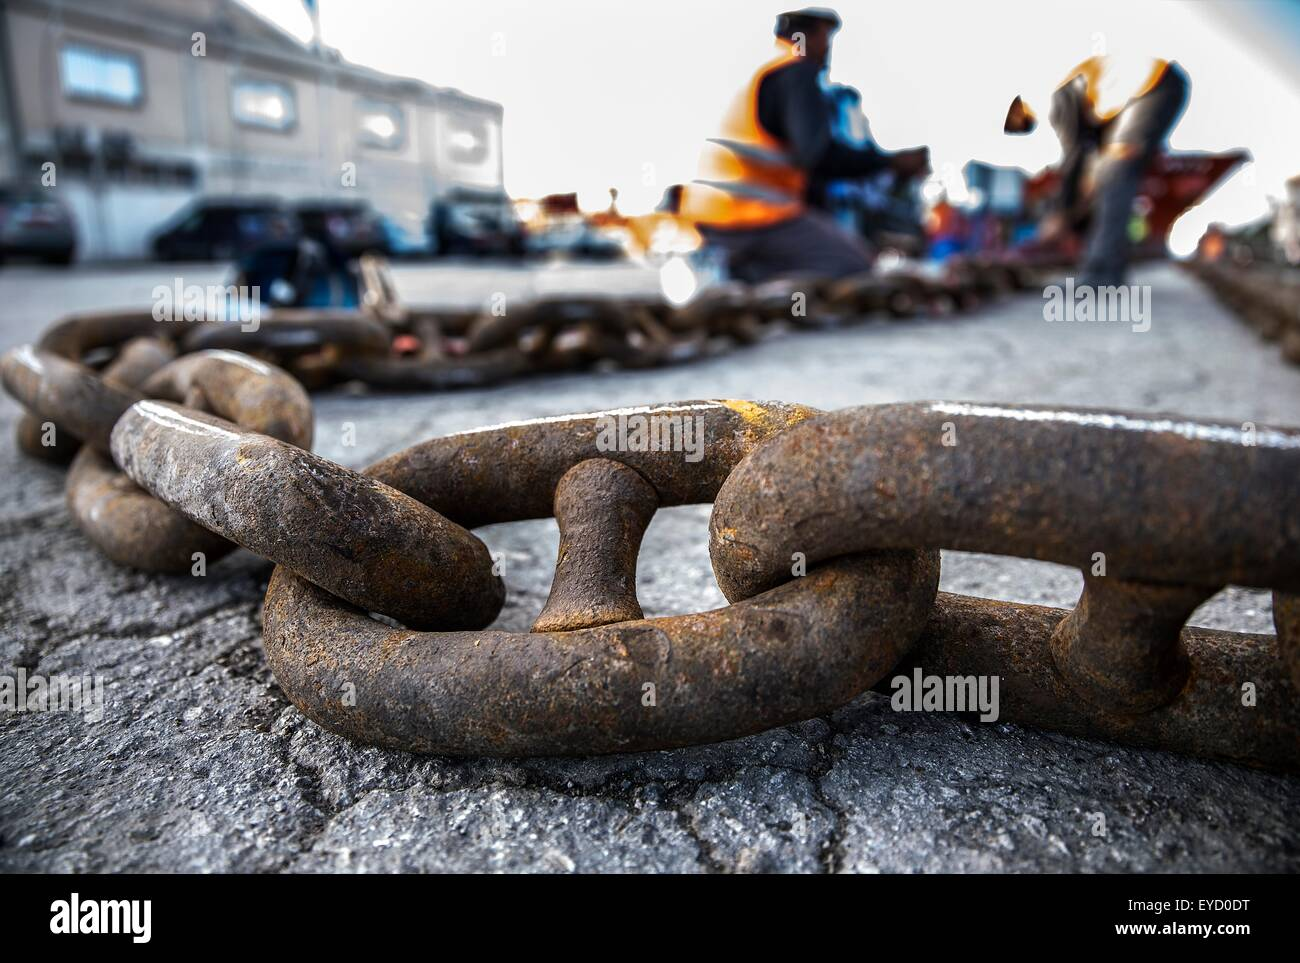 Surface level view on welders welding chain on dock - Stock Image